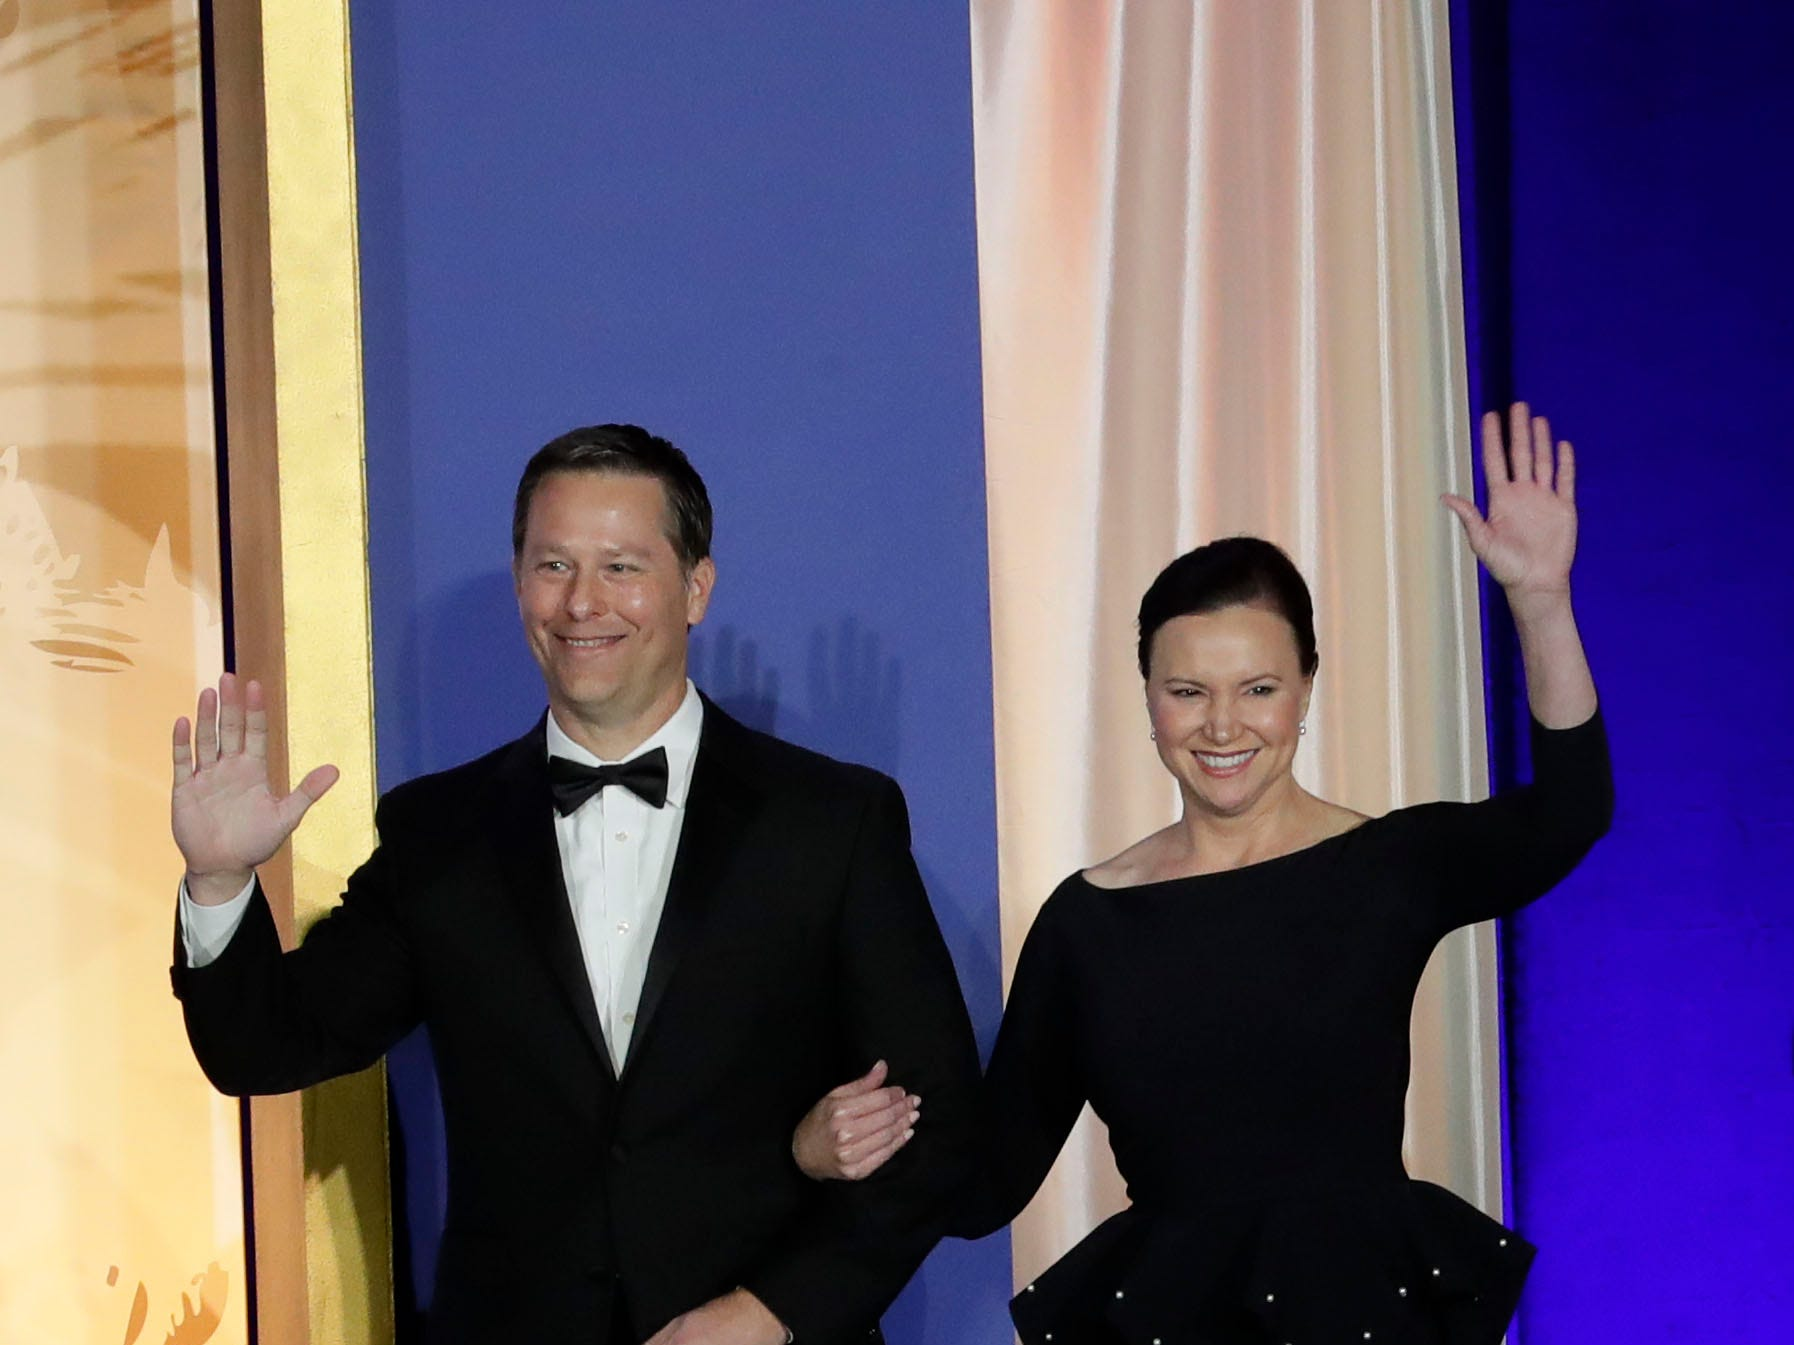 Hundreds of guests from all over Florida attend Florida's 46th Governor's Inaugural Ball at the Tucker Civic Center, Tuesday, Jan. 8, 2019. Attorney General Ashley Moody, right, waves to the crowd as she is introduced.